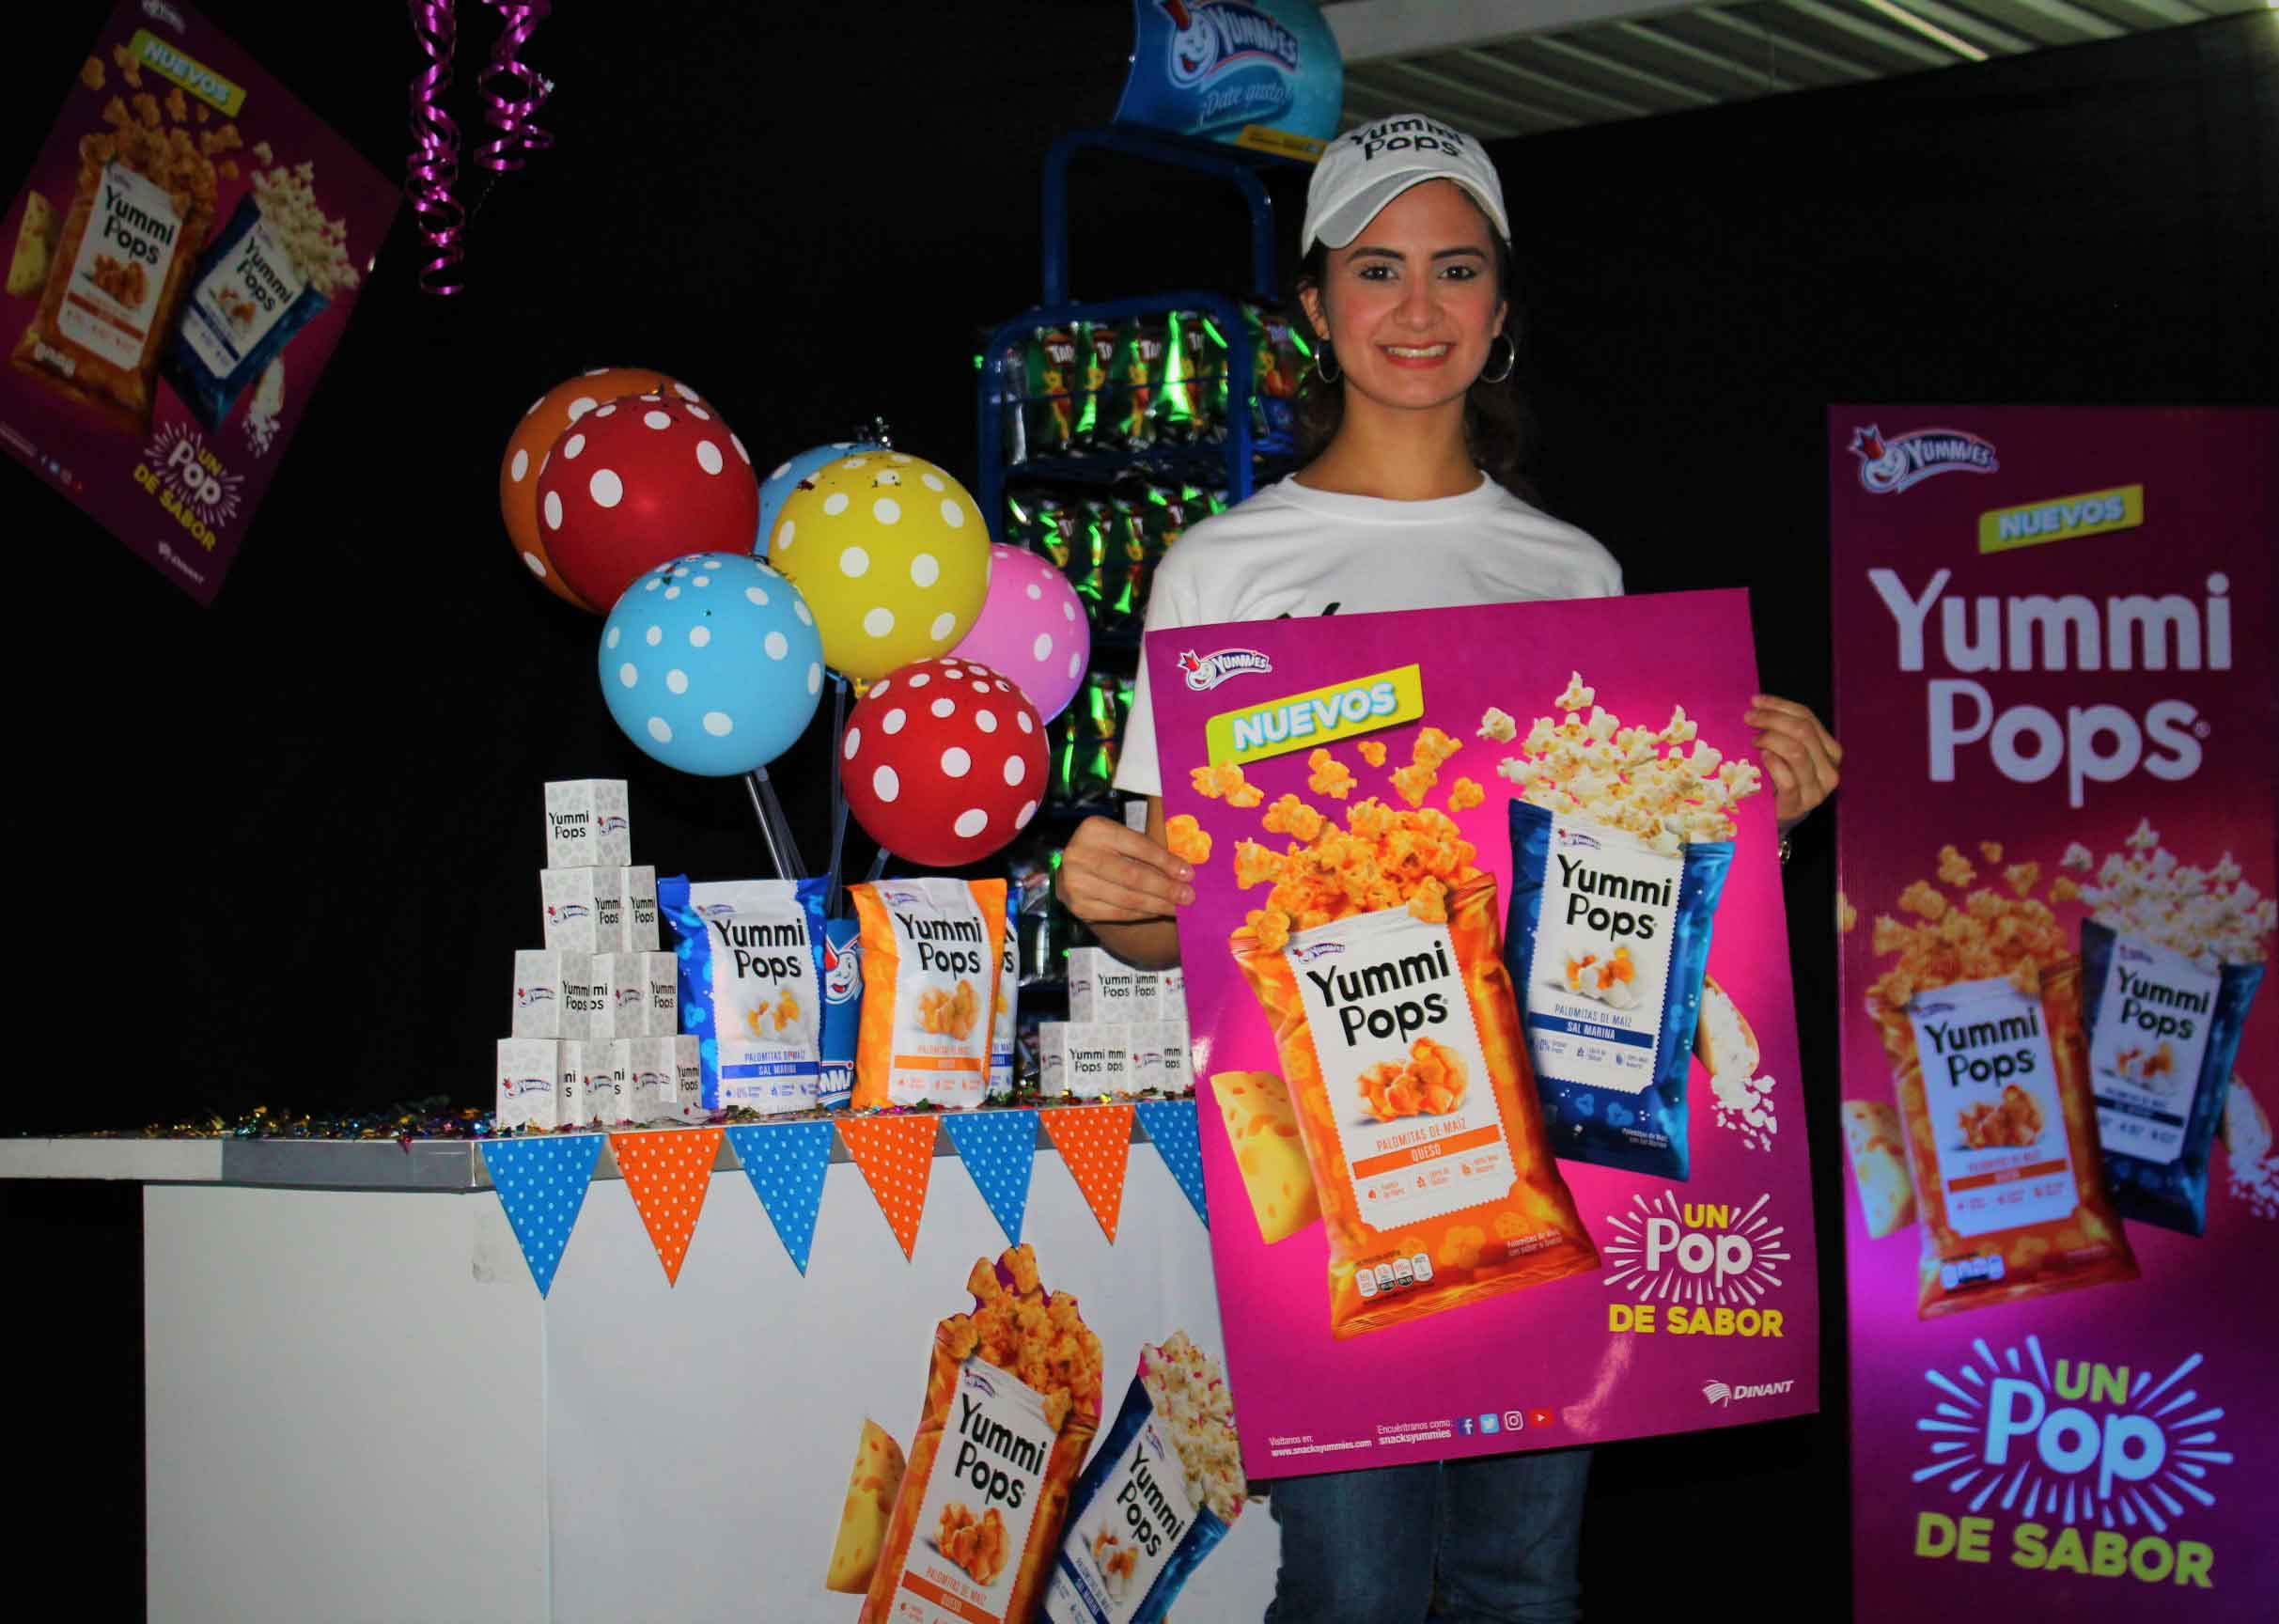 Yummies presents Yummi Pops, Popcorn